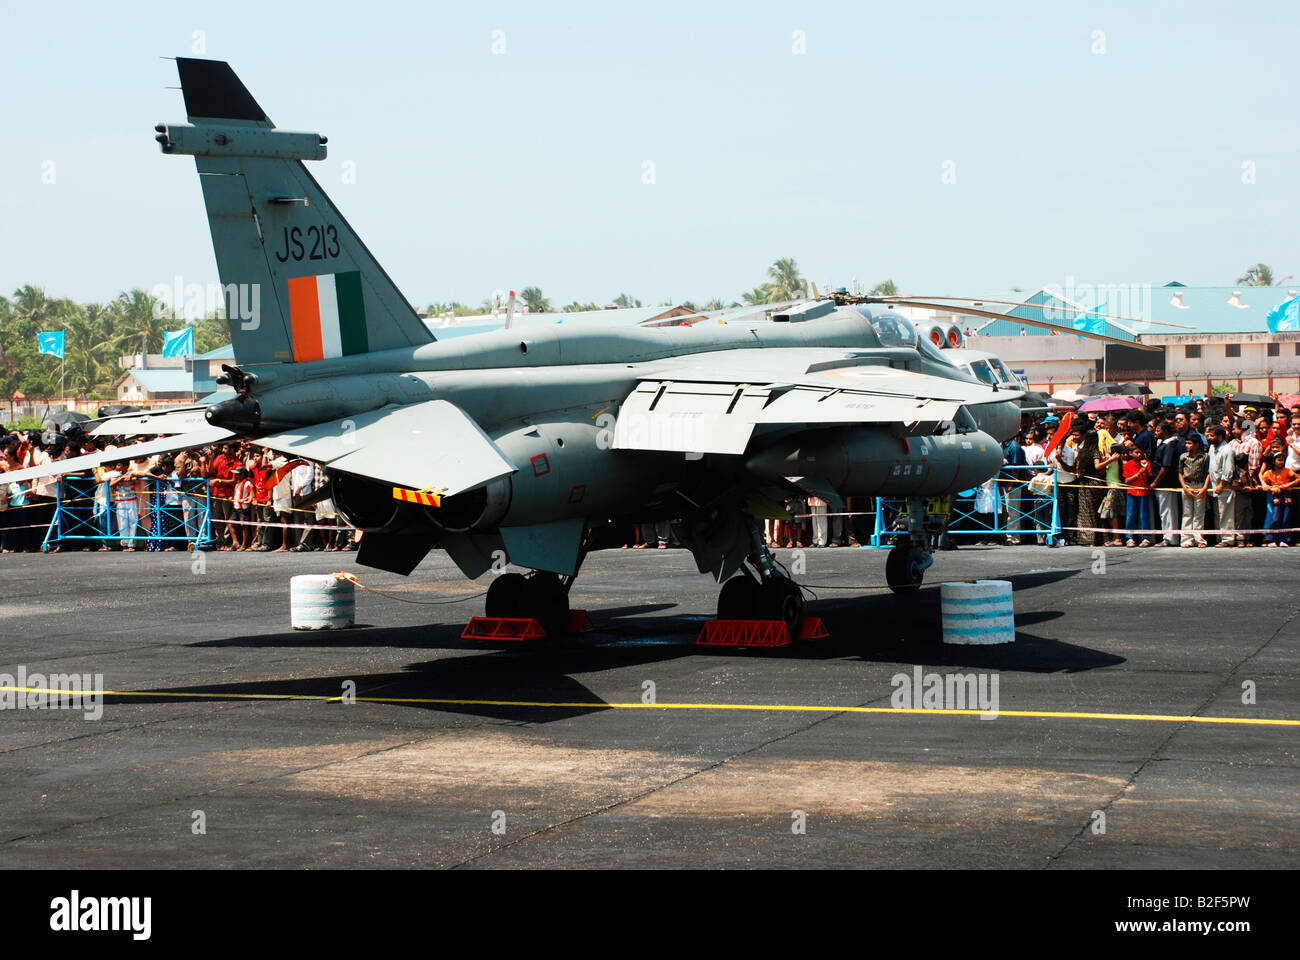 An indian airforce aircraft parked in the tarmac - Stock Image